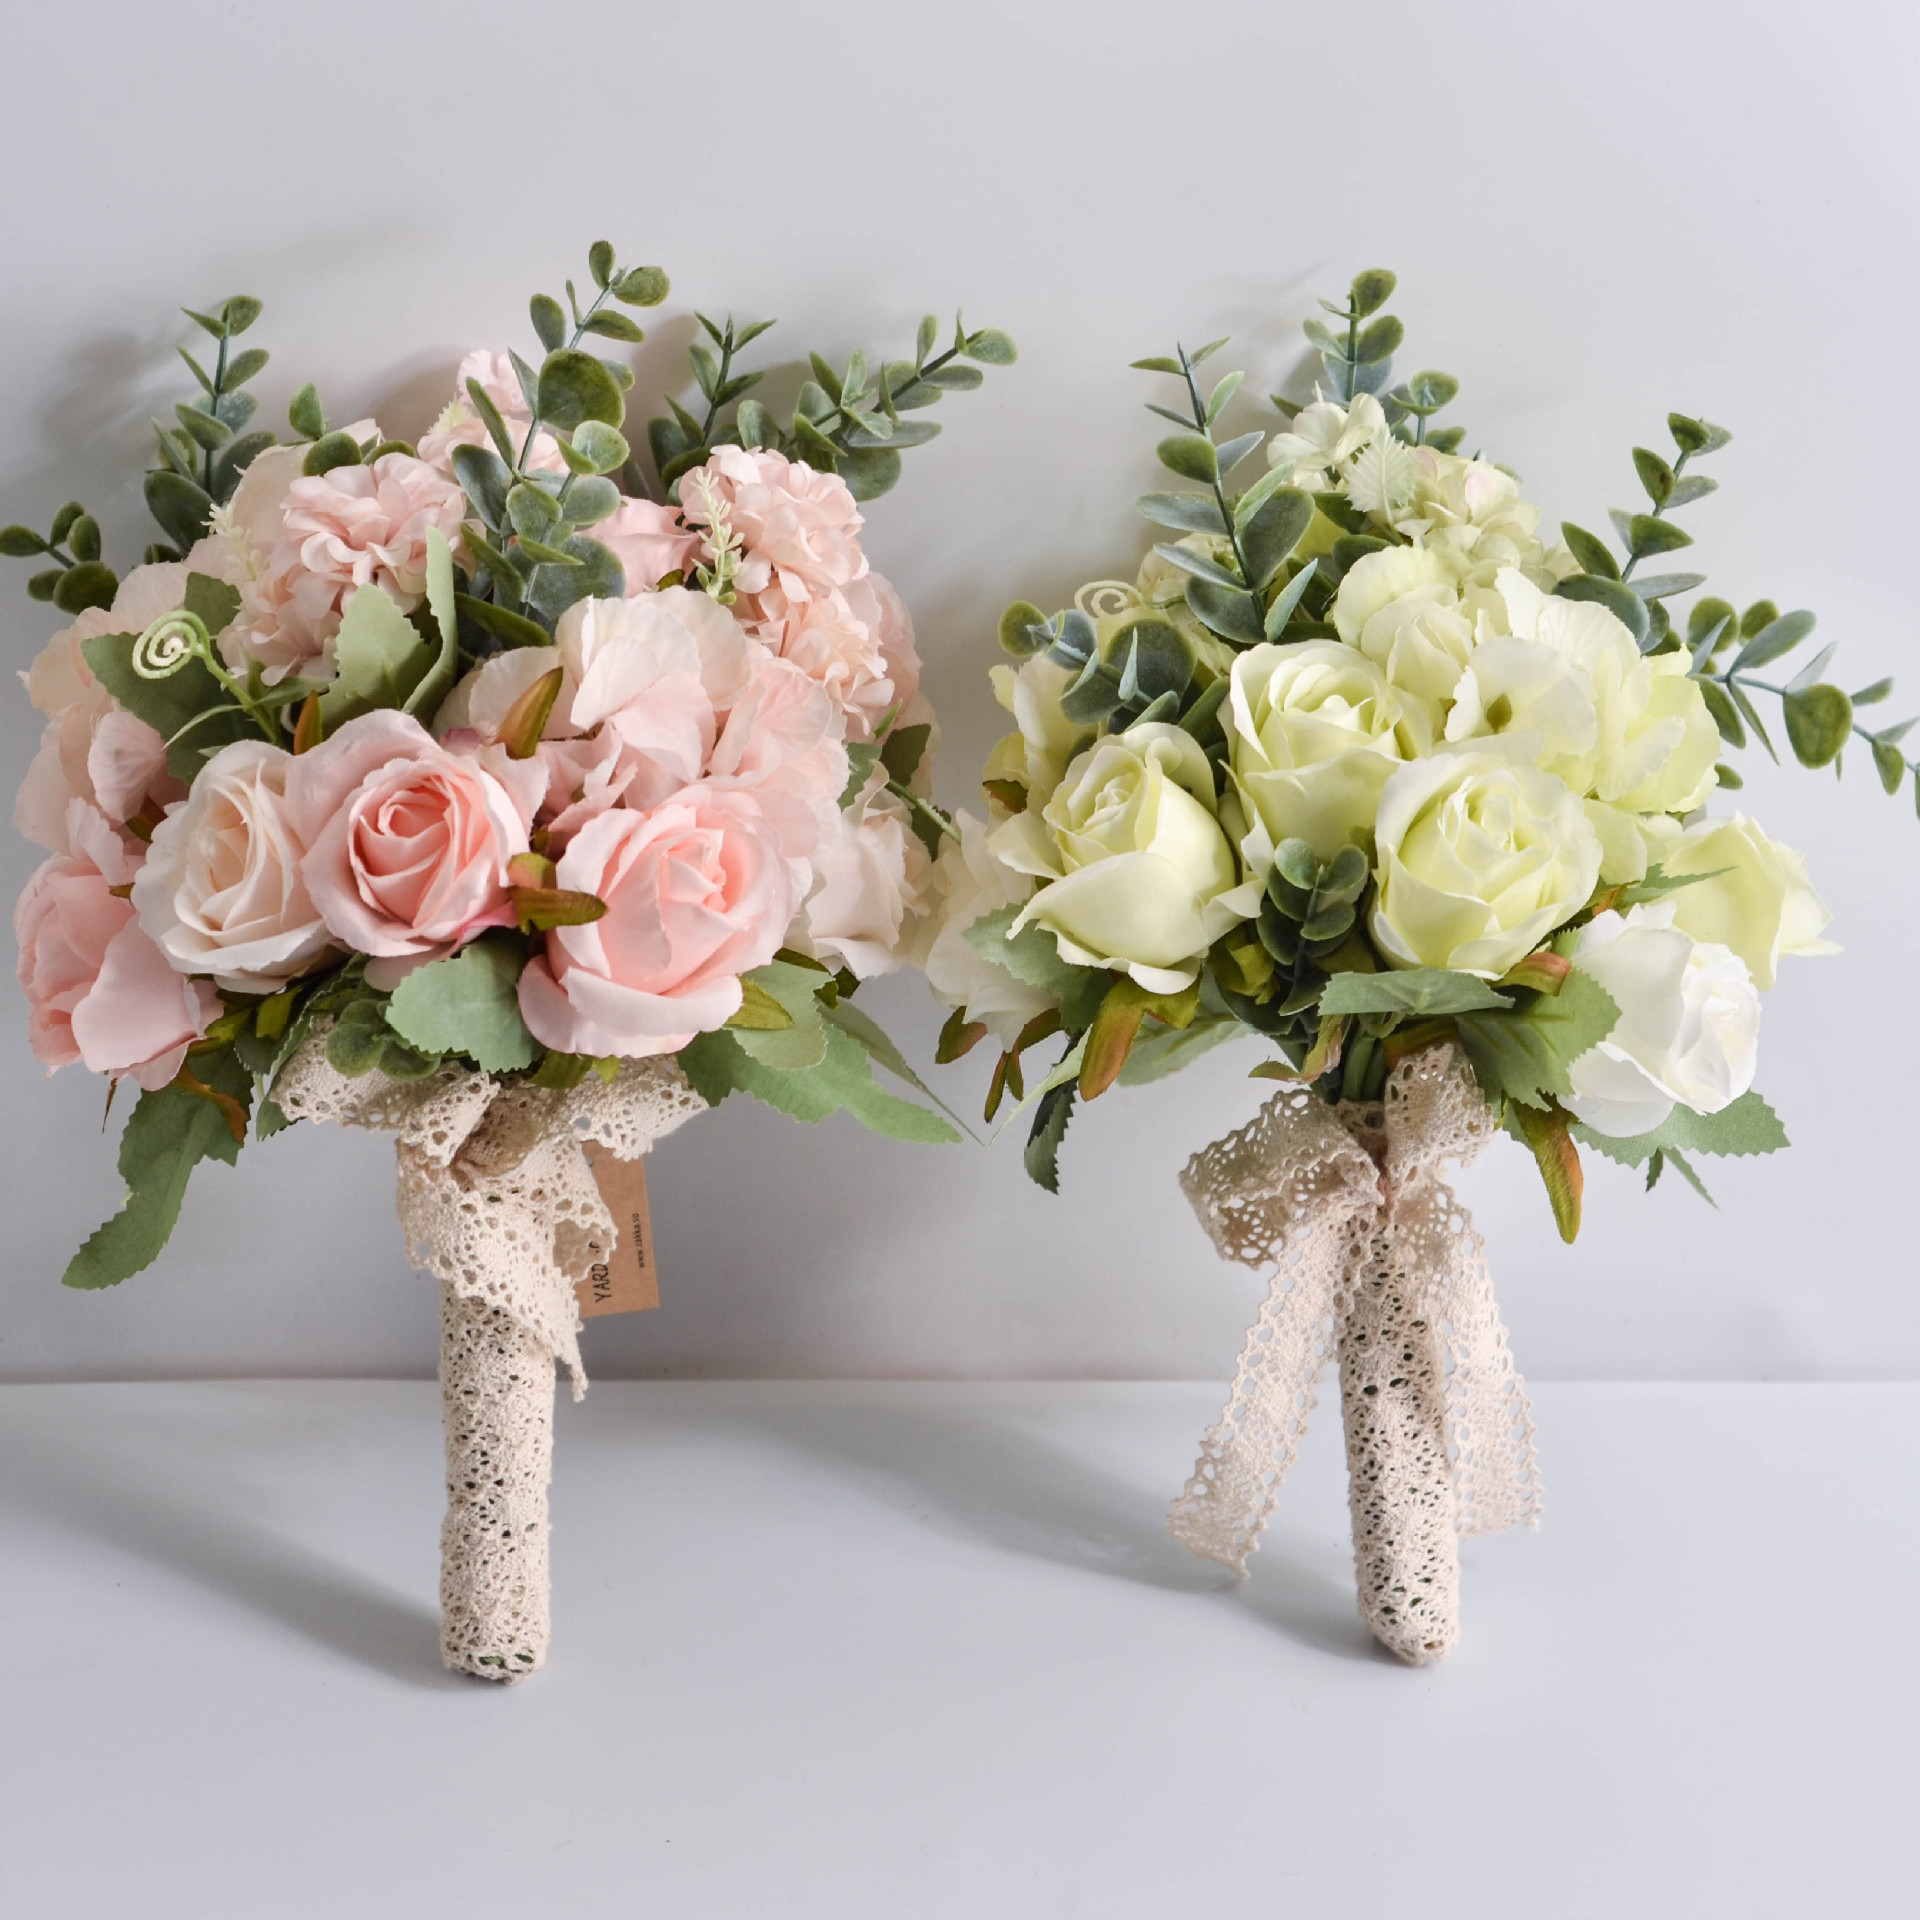 Wedding Bouquet Flowers Marriage Accessories Small Bridal Bouquets Silk Roses For Bridesmaids Home Decoration